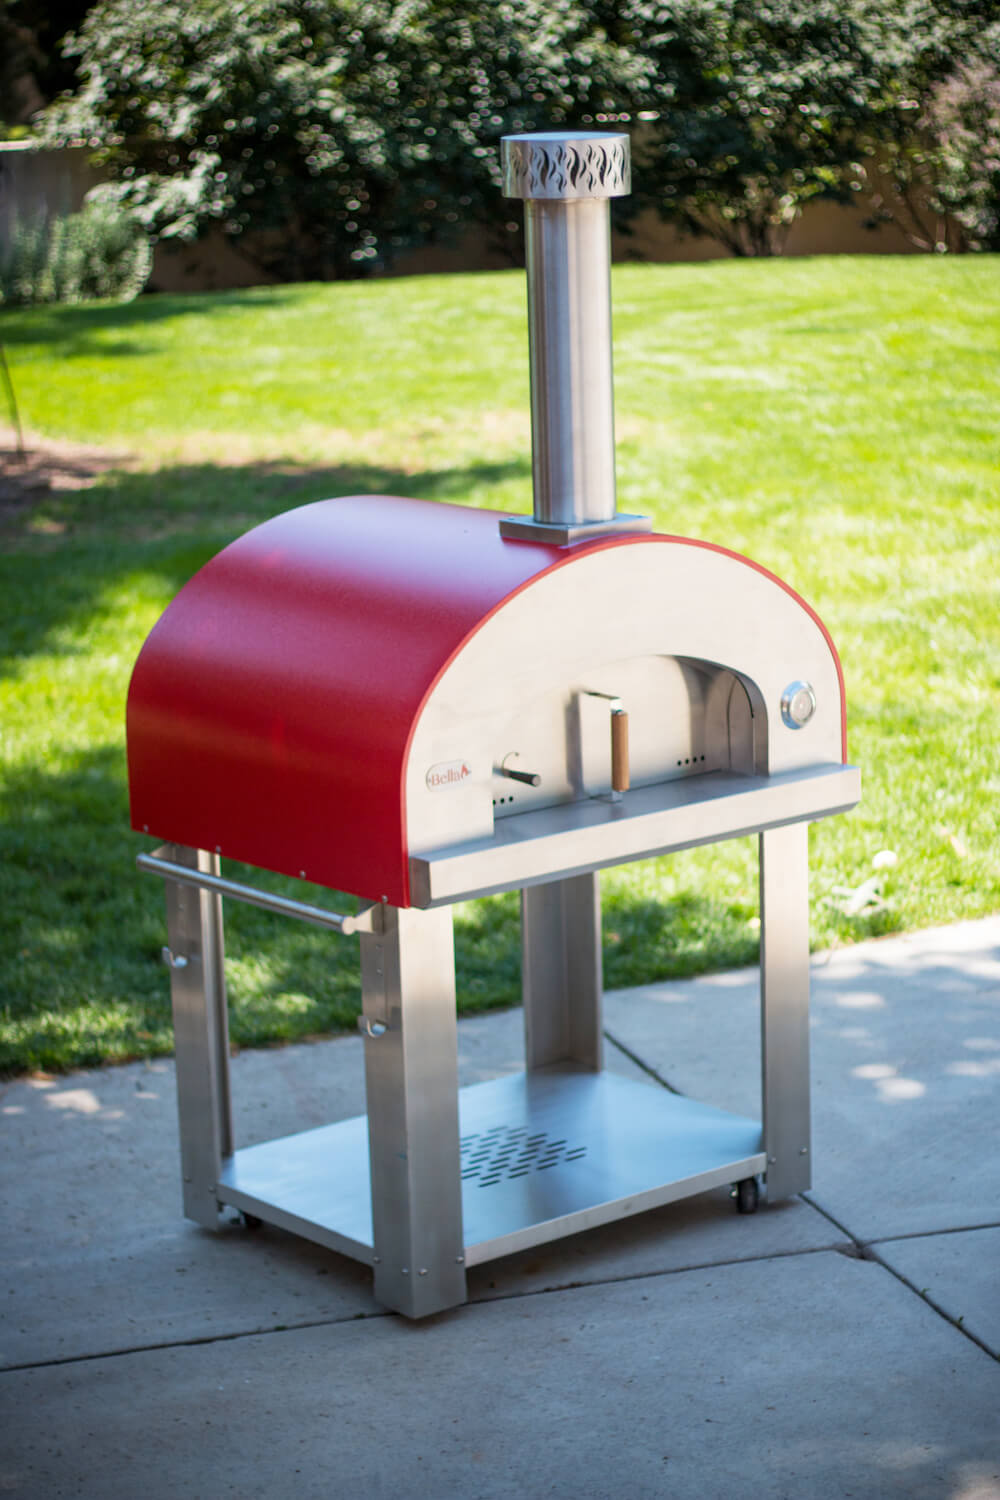 Grande36 Portable Wood Fired Pizza Oven